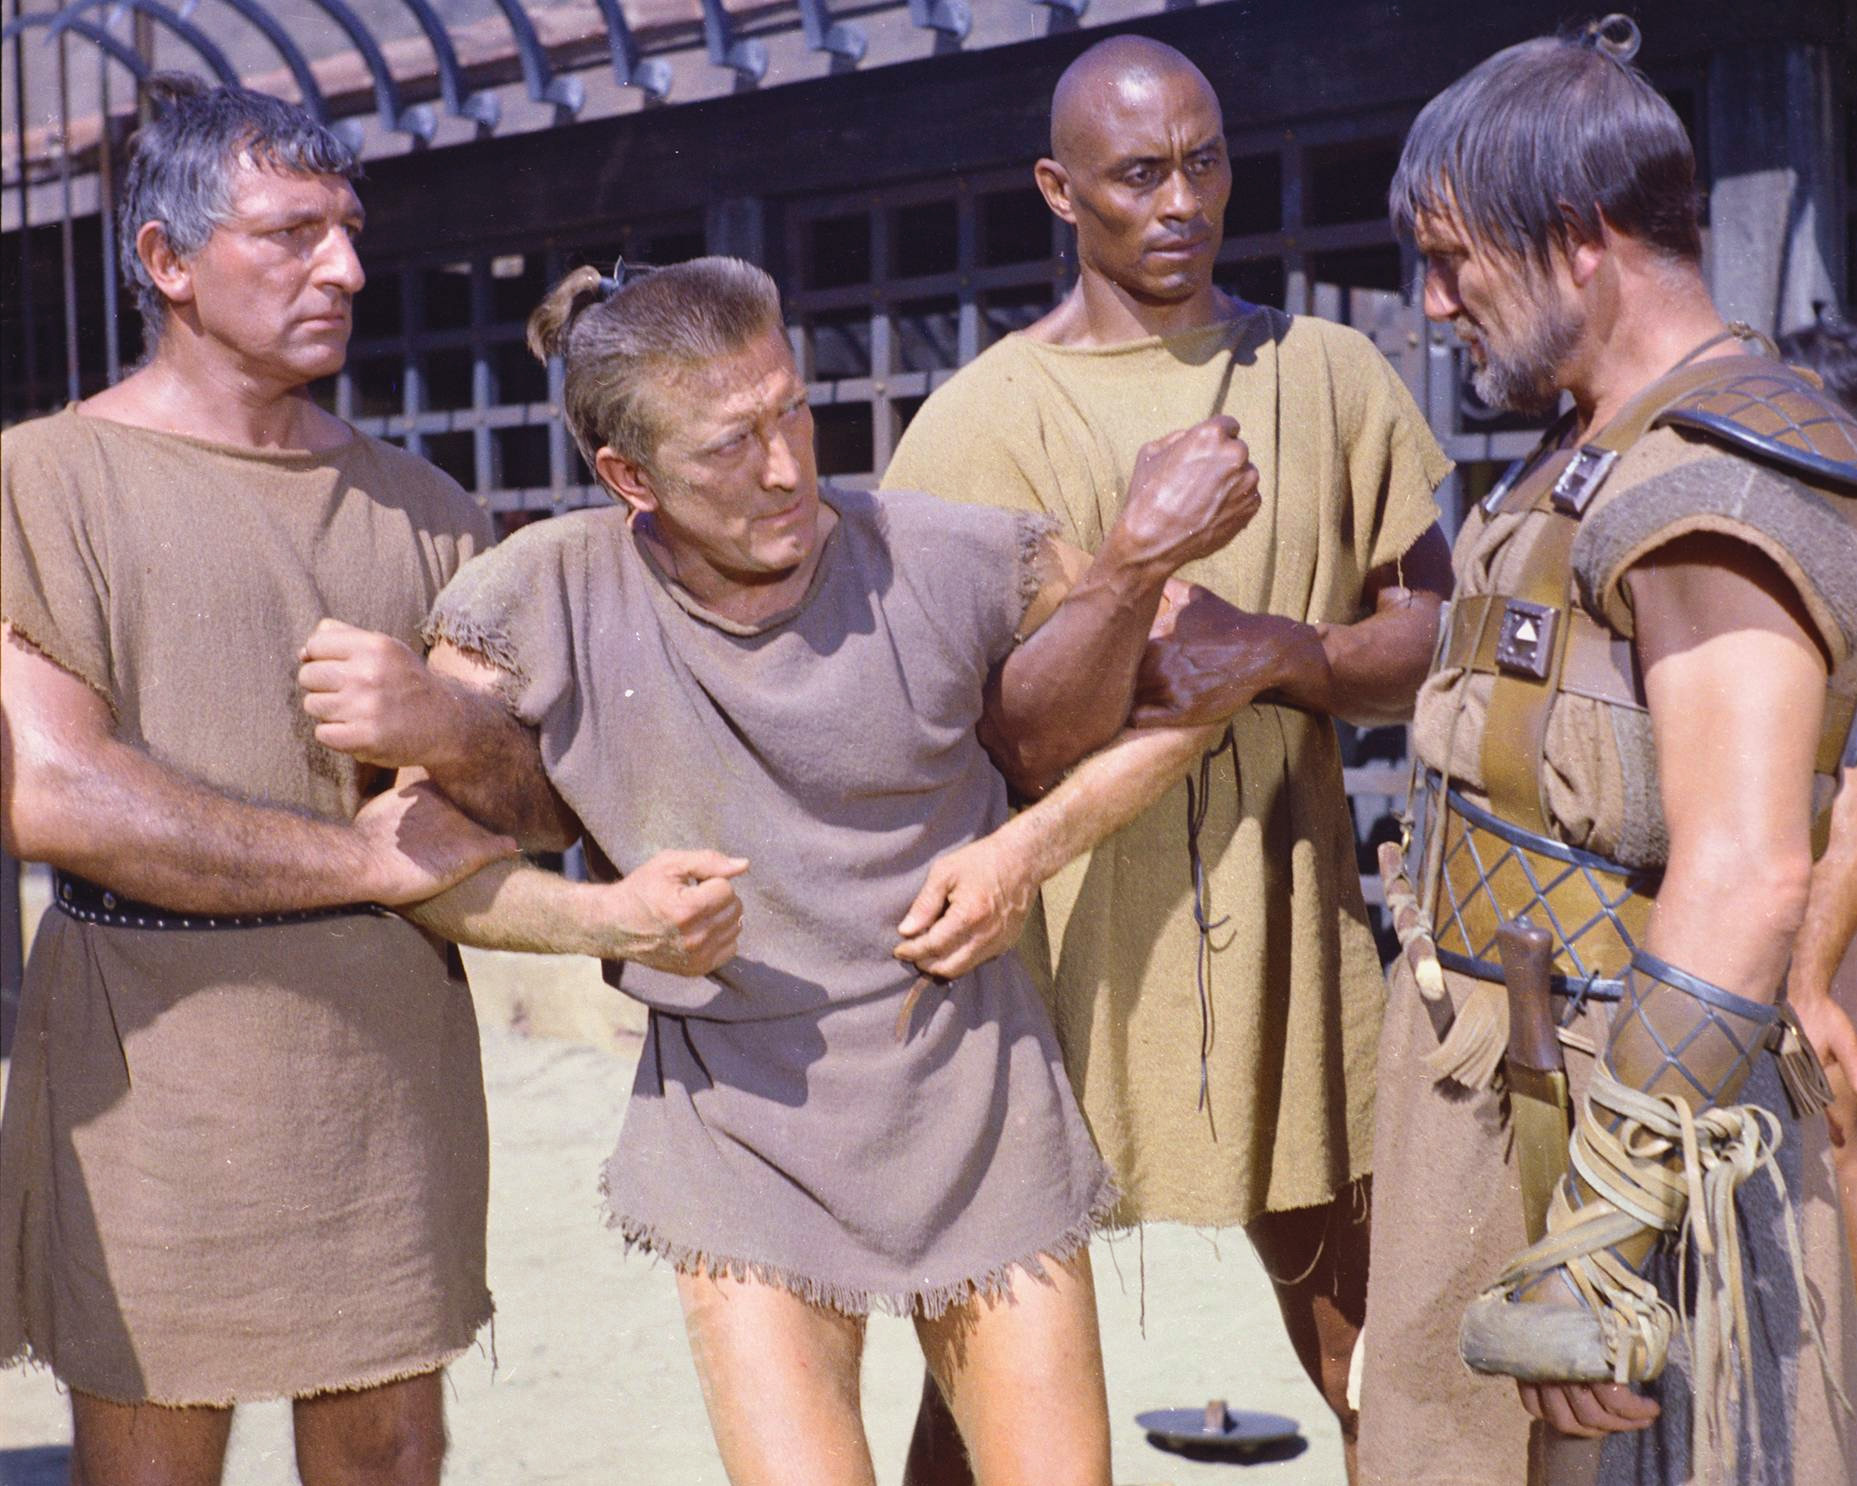 Laurence olivier spartacus quotes - Laurence Olivier Spartacus Quotes 16